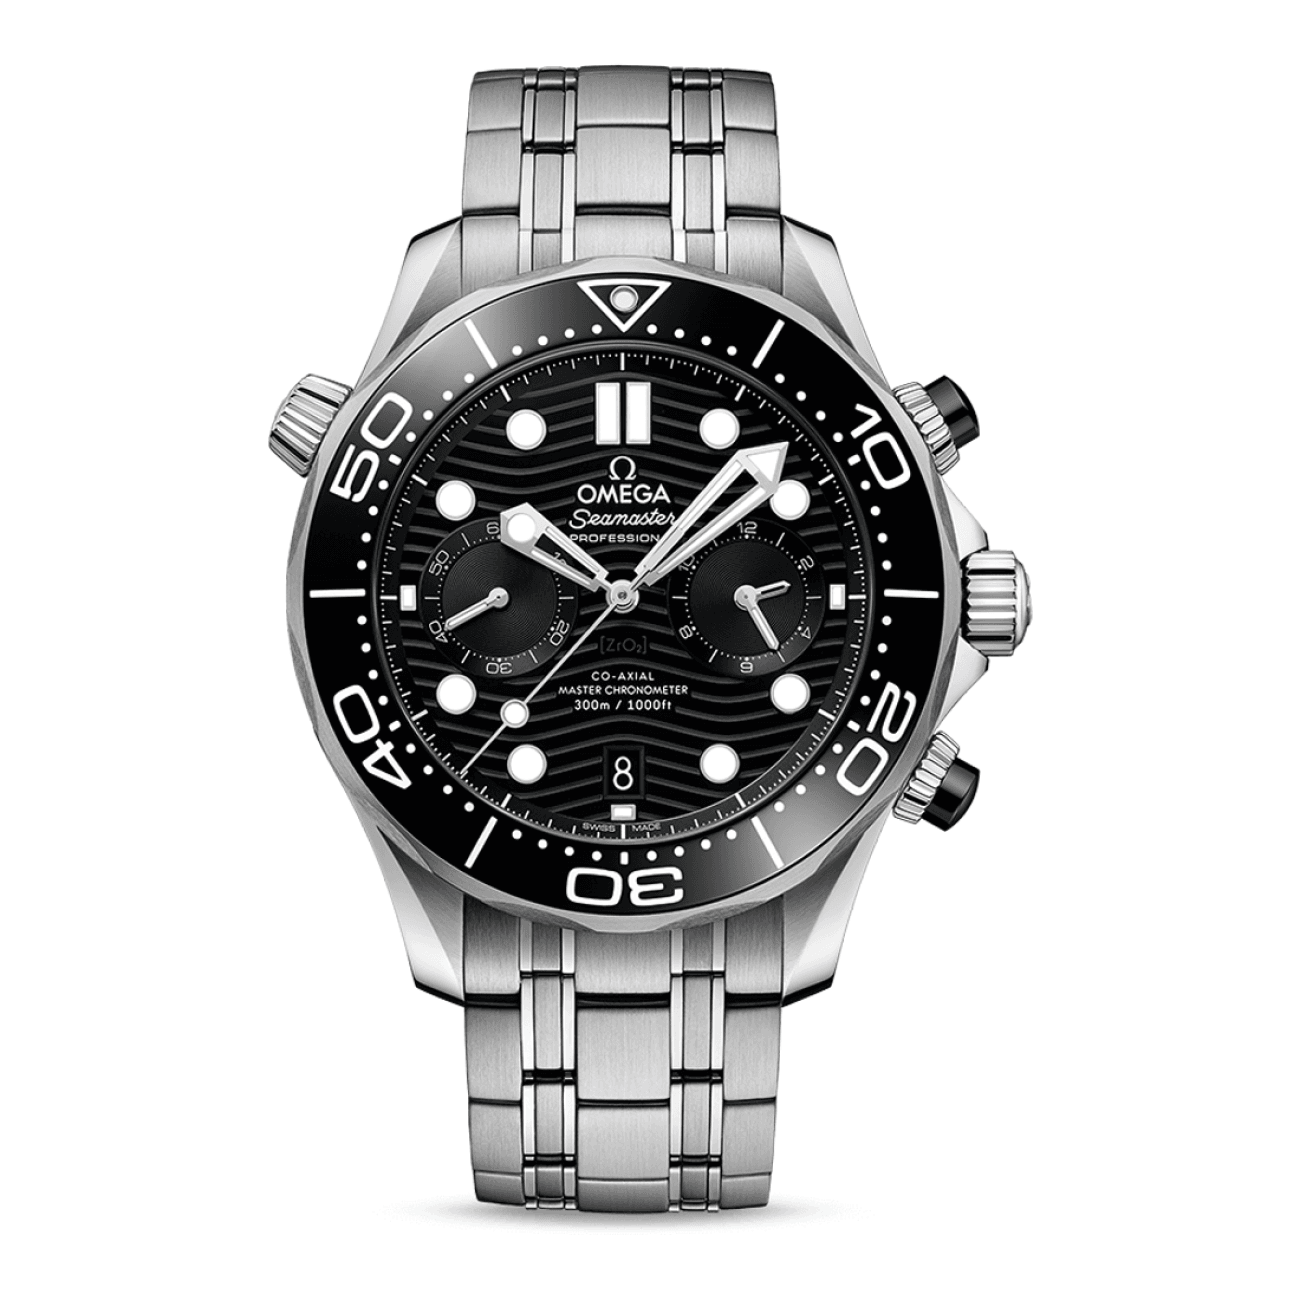 Omega Watches - SEAMASTER DIVER 300M OMEGA COAXIAL MASTER CHRONOMETER CHRONOGRAPH 44 MM | Manfredi Jewels